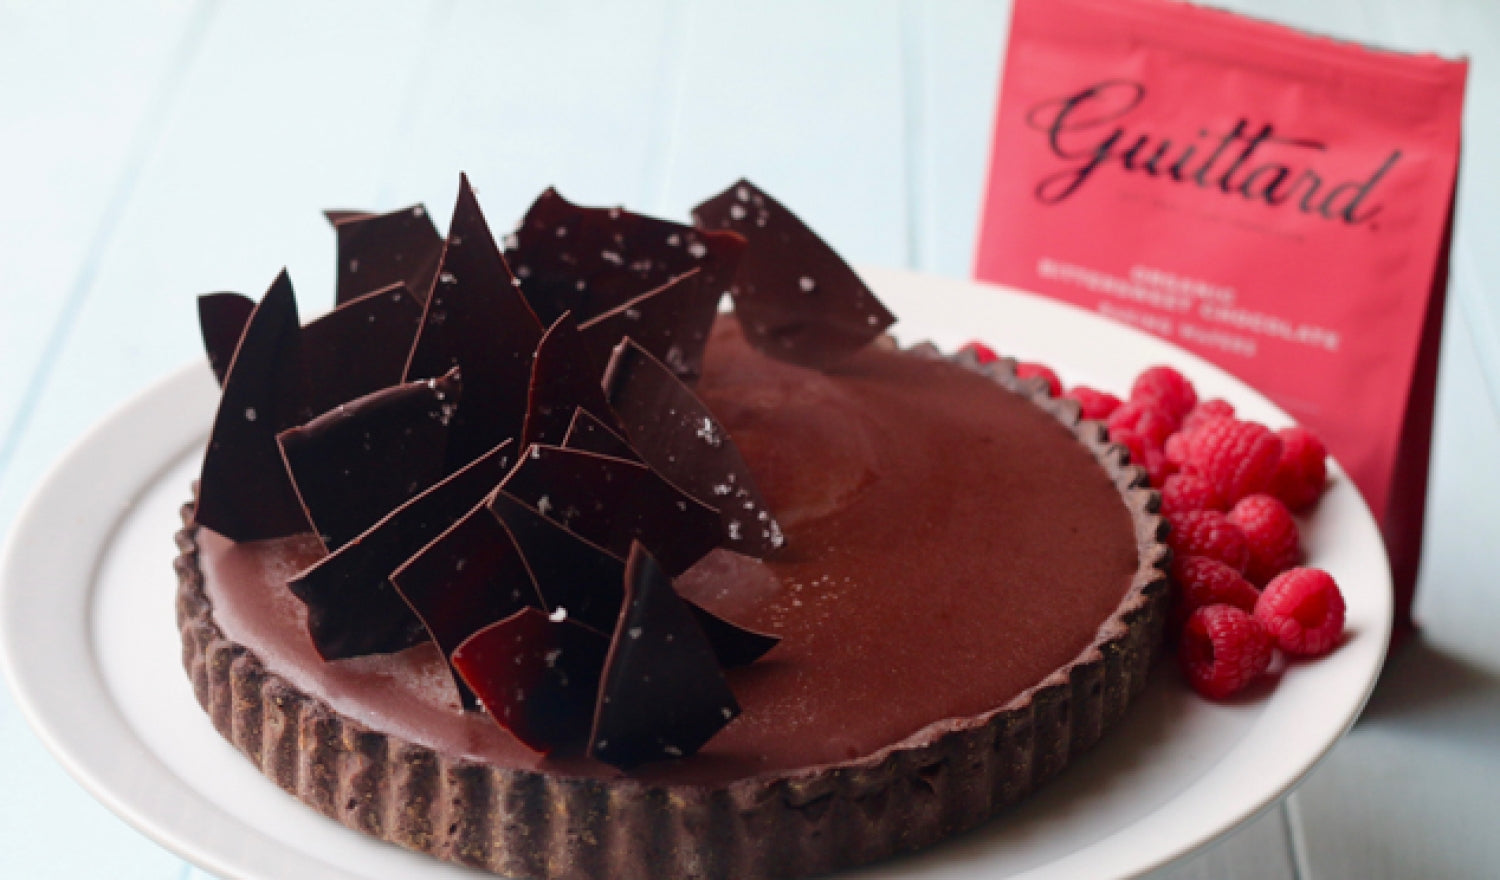 Will Torrent's Salted Caramel And Chocolate Tart Recipe